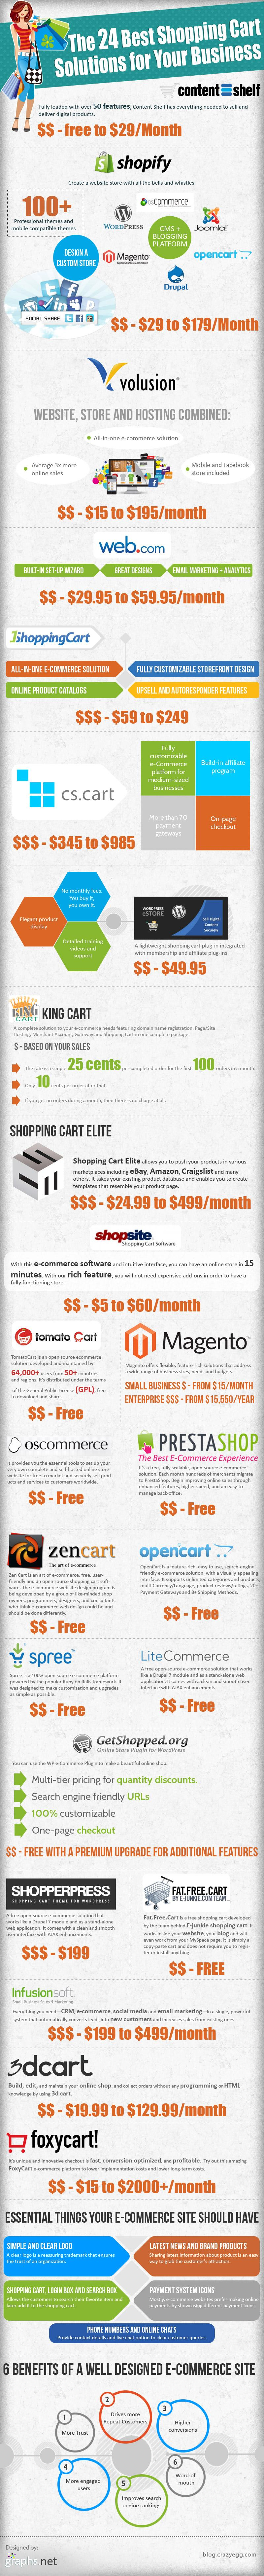 The-24-Best-Shopping-Cart-Solutions-for-Your-Business (2)